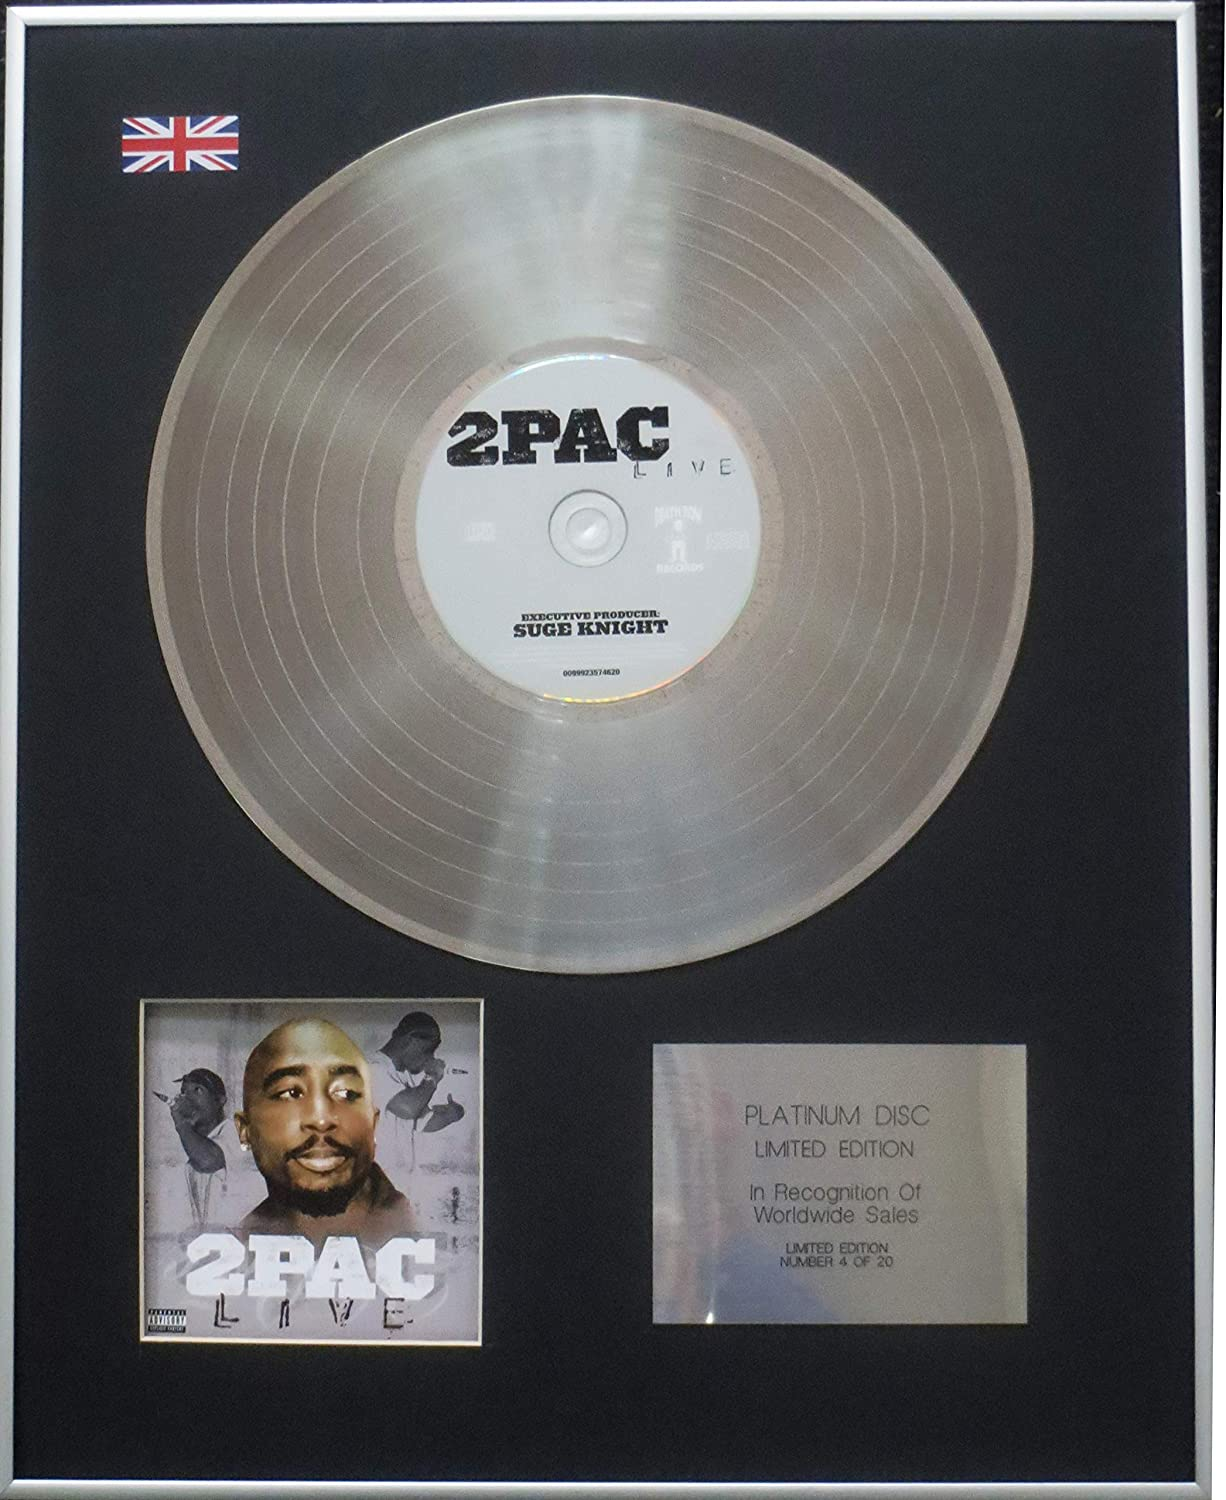 Tupac Shakur - Limited Edition CD Platinum LP Disc - 2Pac Live B07RLKYK2B